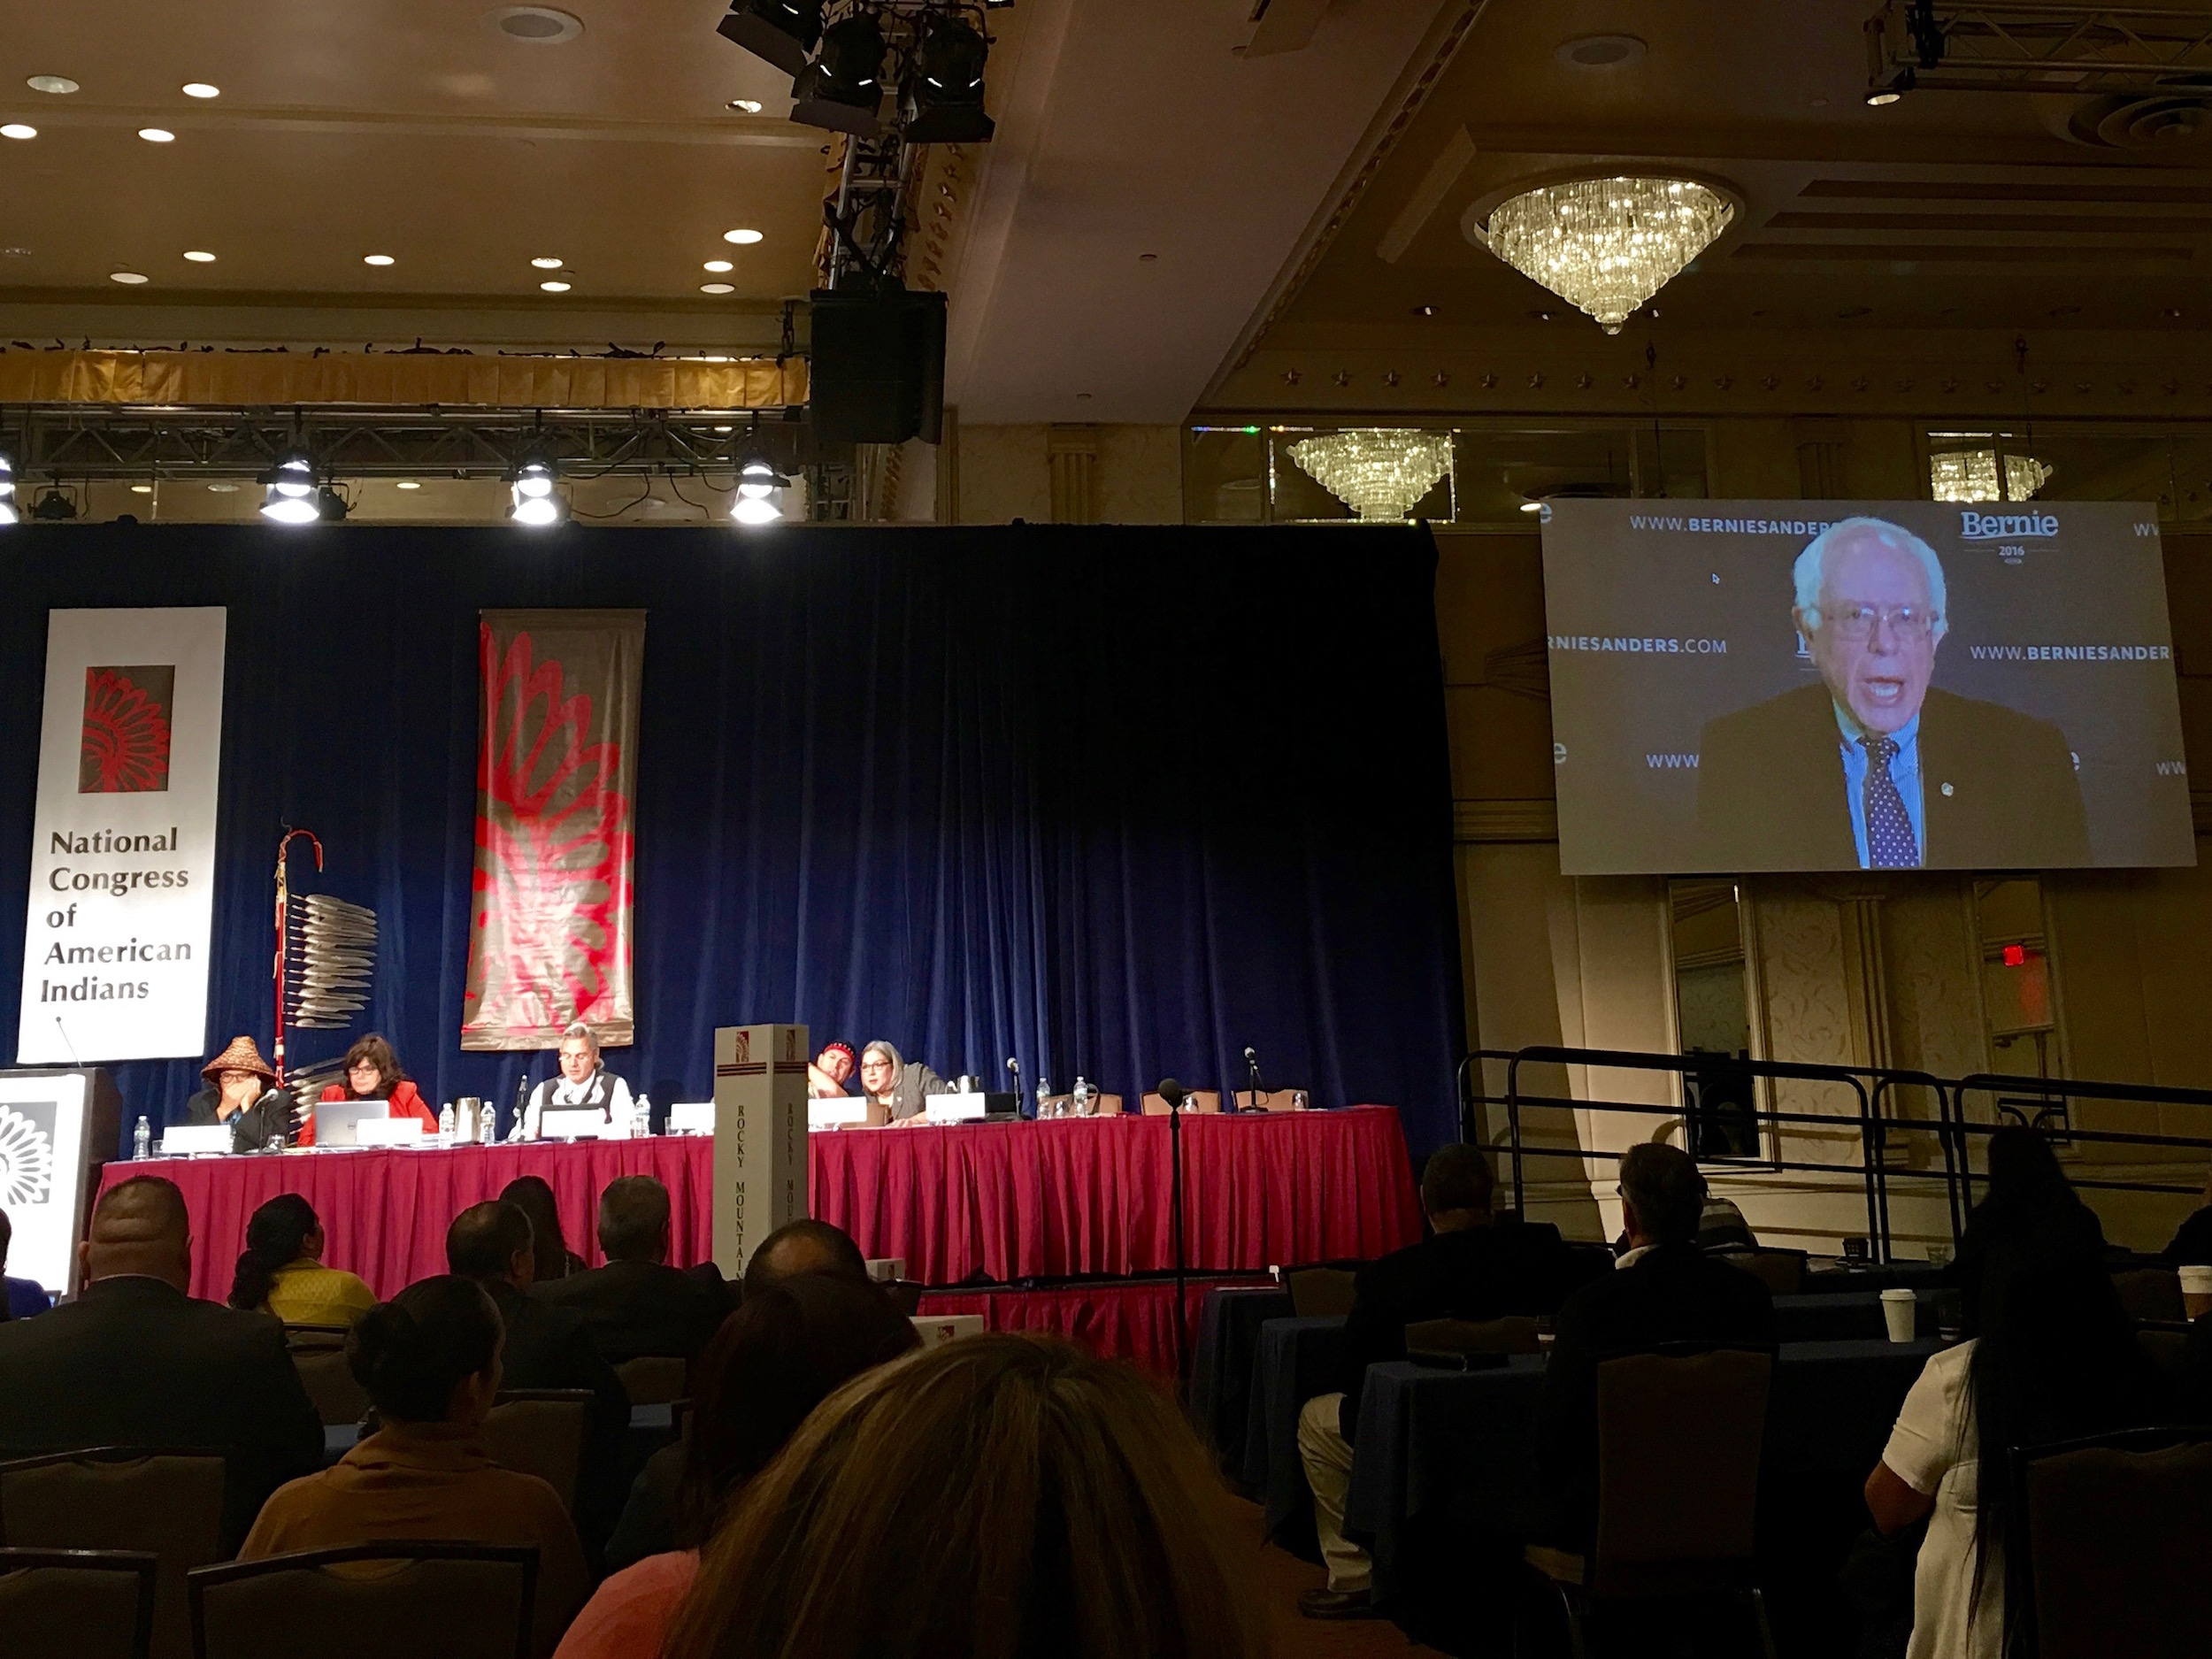 Updates from National Congress of American Indians DC session